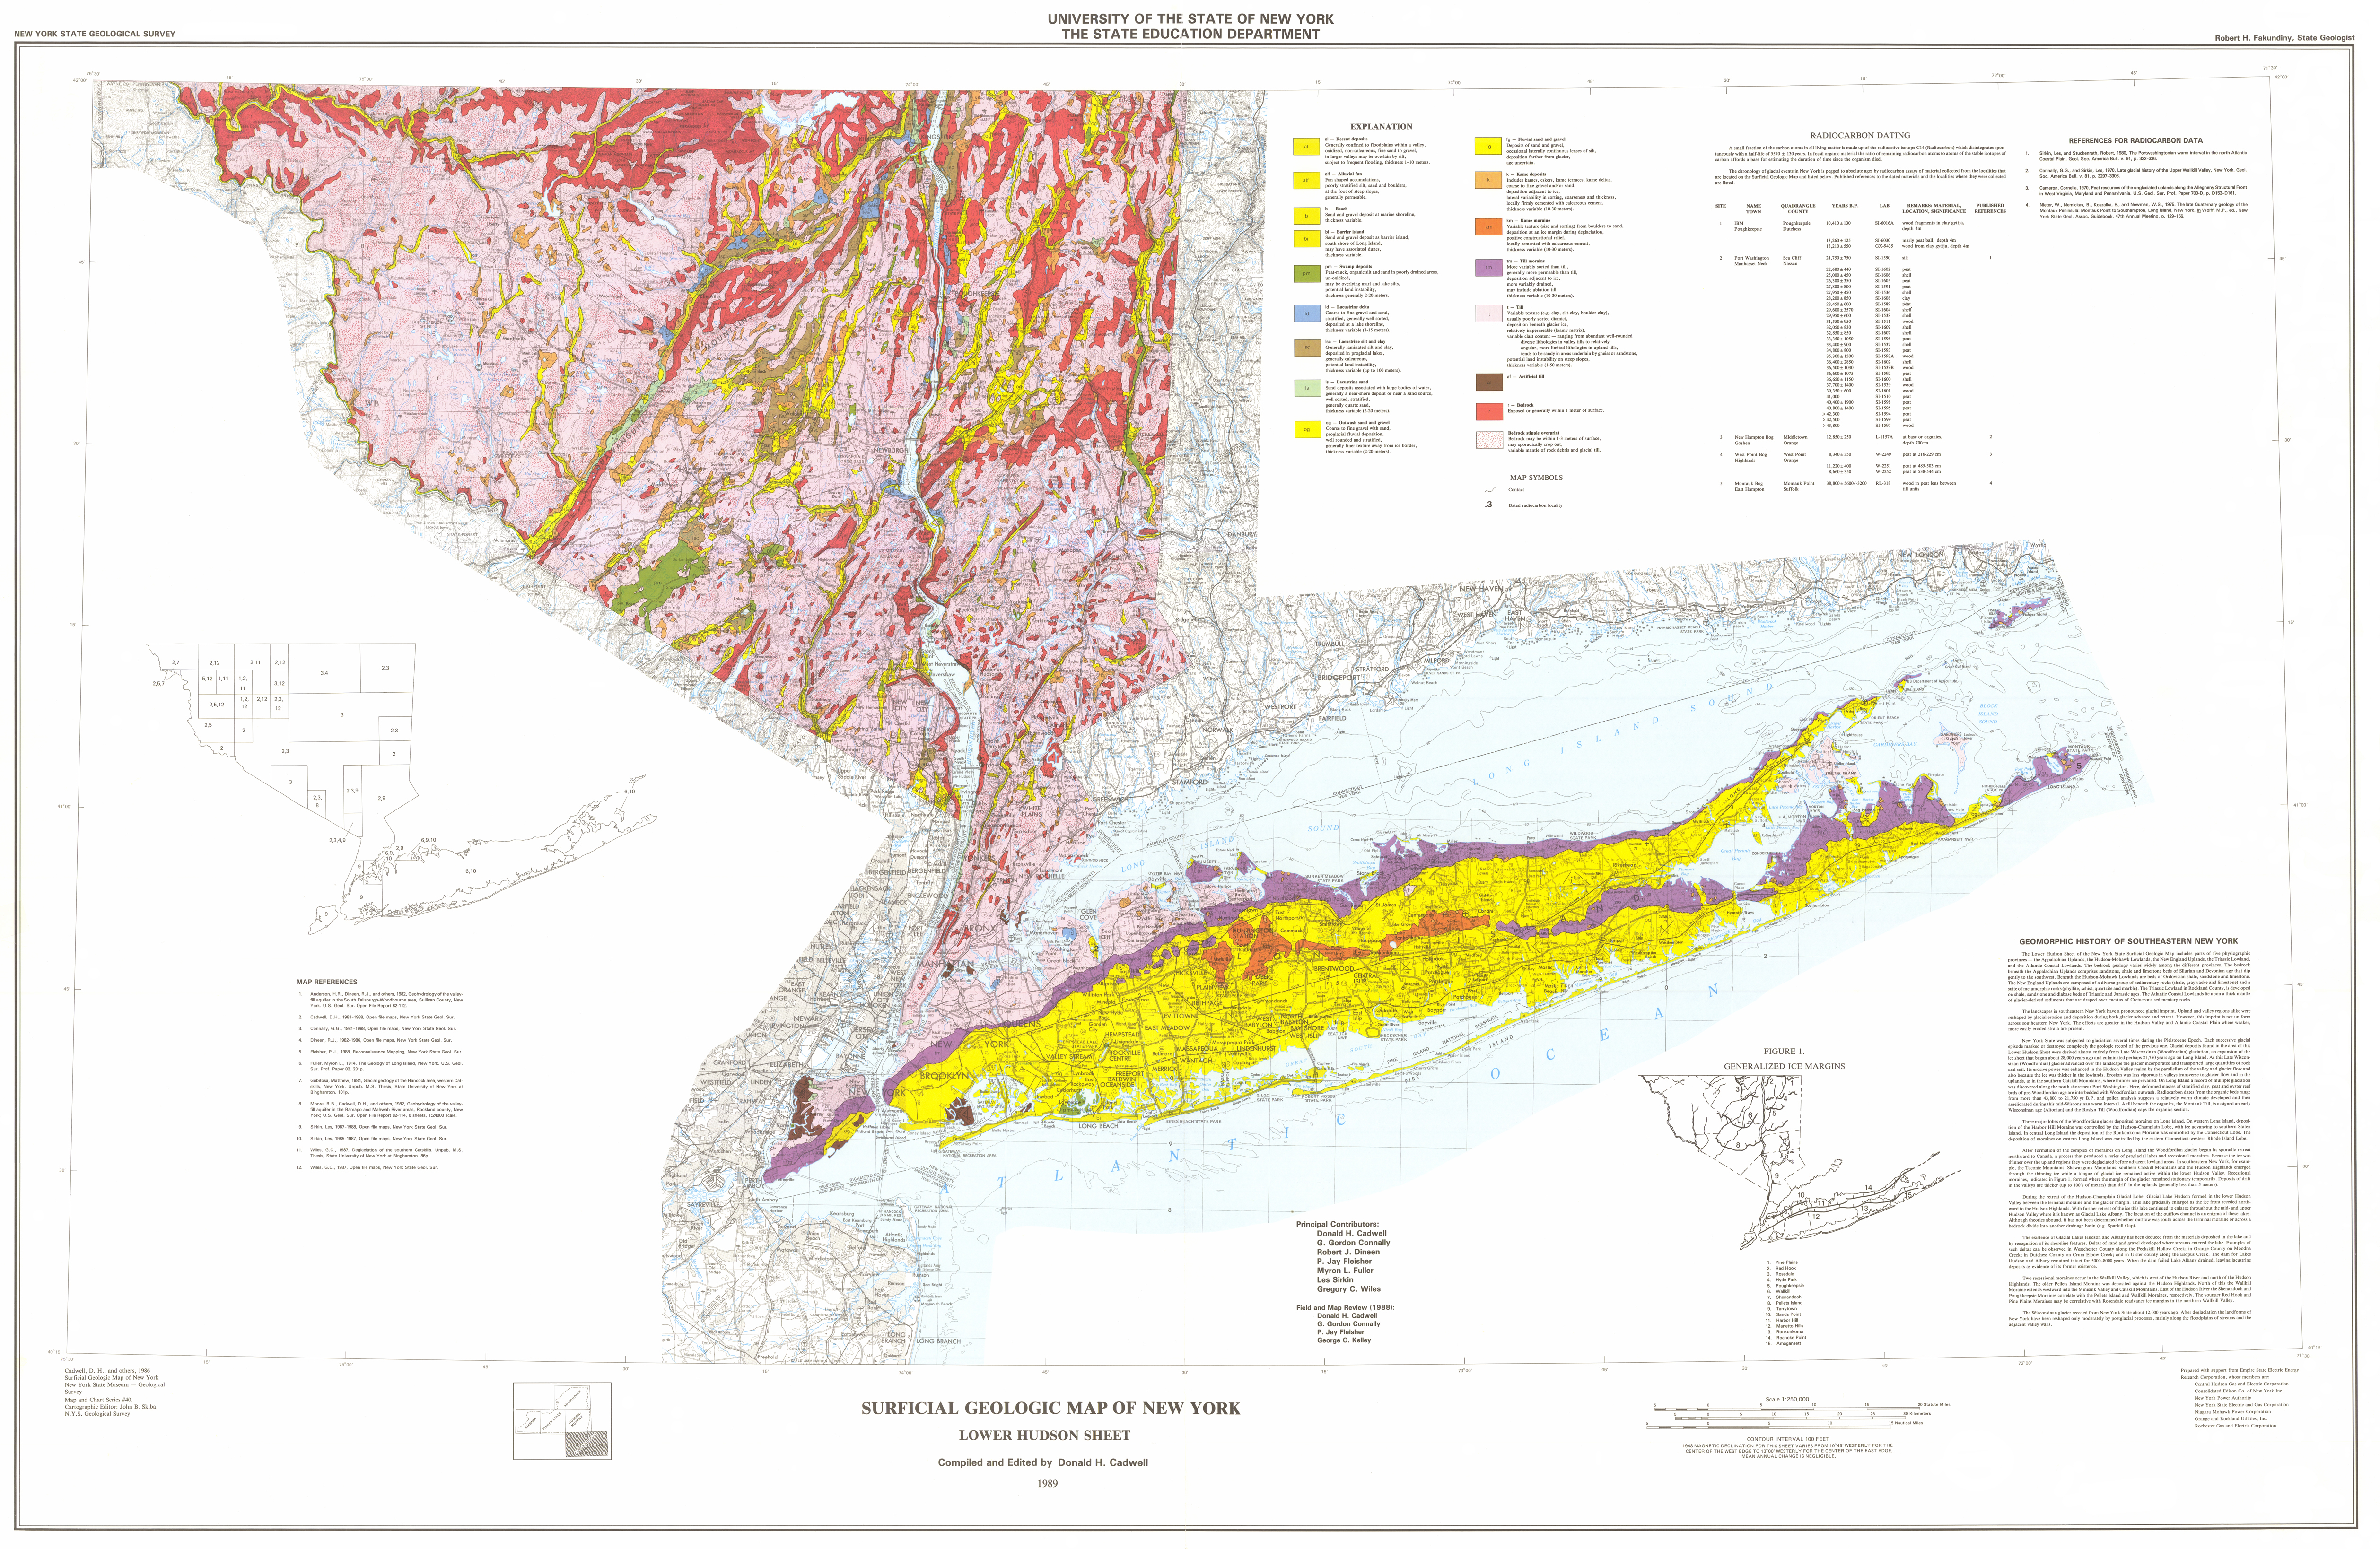 Geographic Information System (GIS) | The New York State Museum